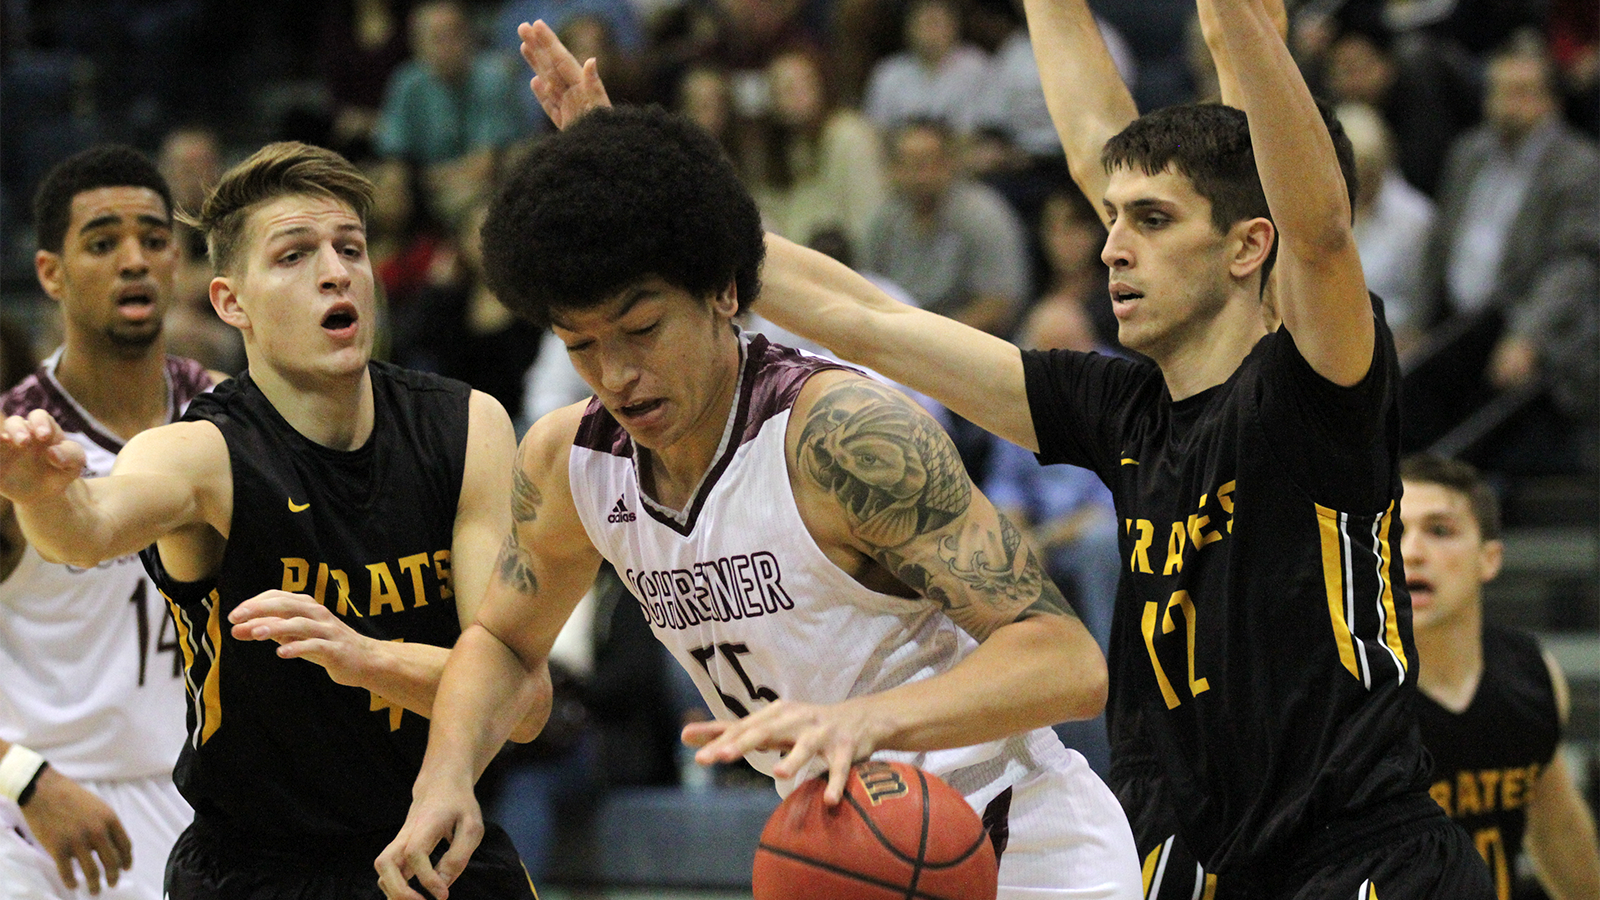 Pirates fall in semifinals to top-seeded Schreiner, 82-76